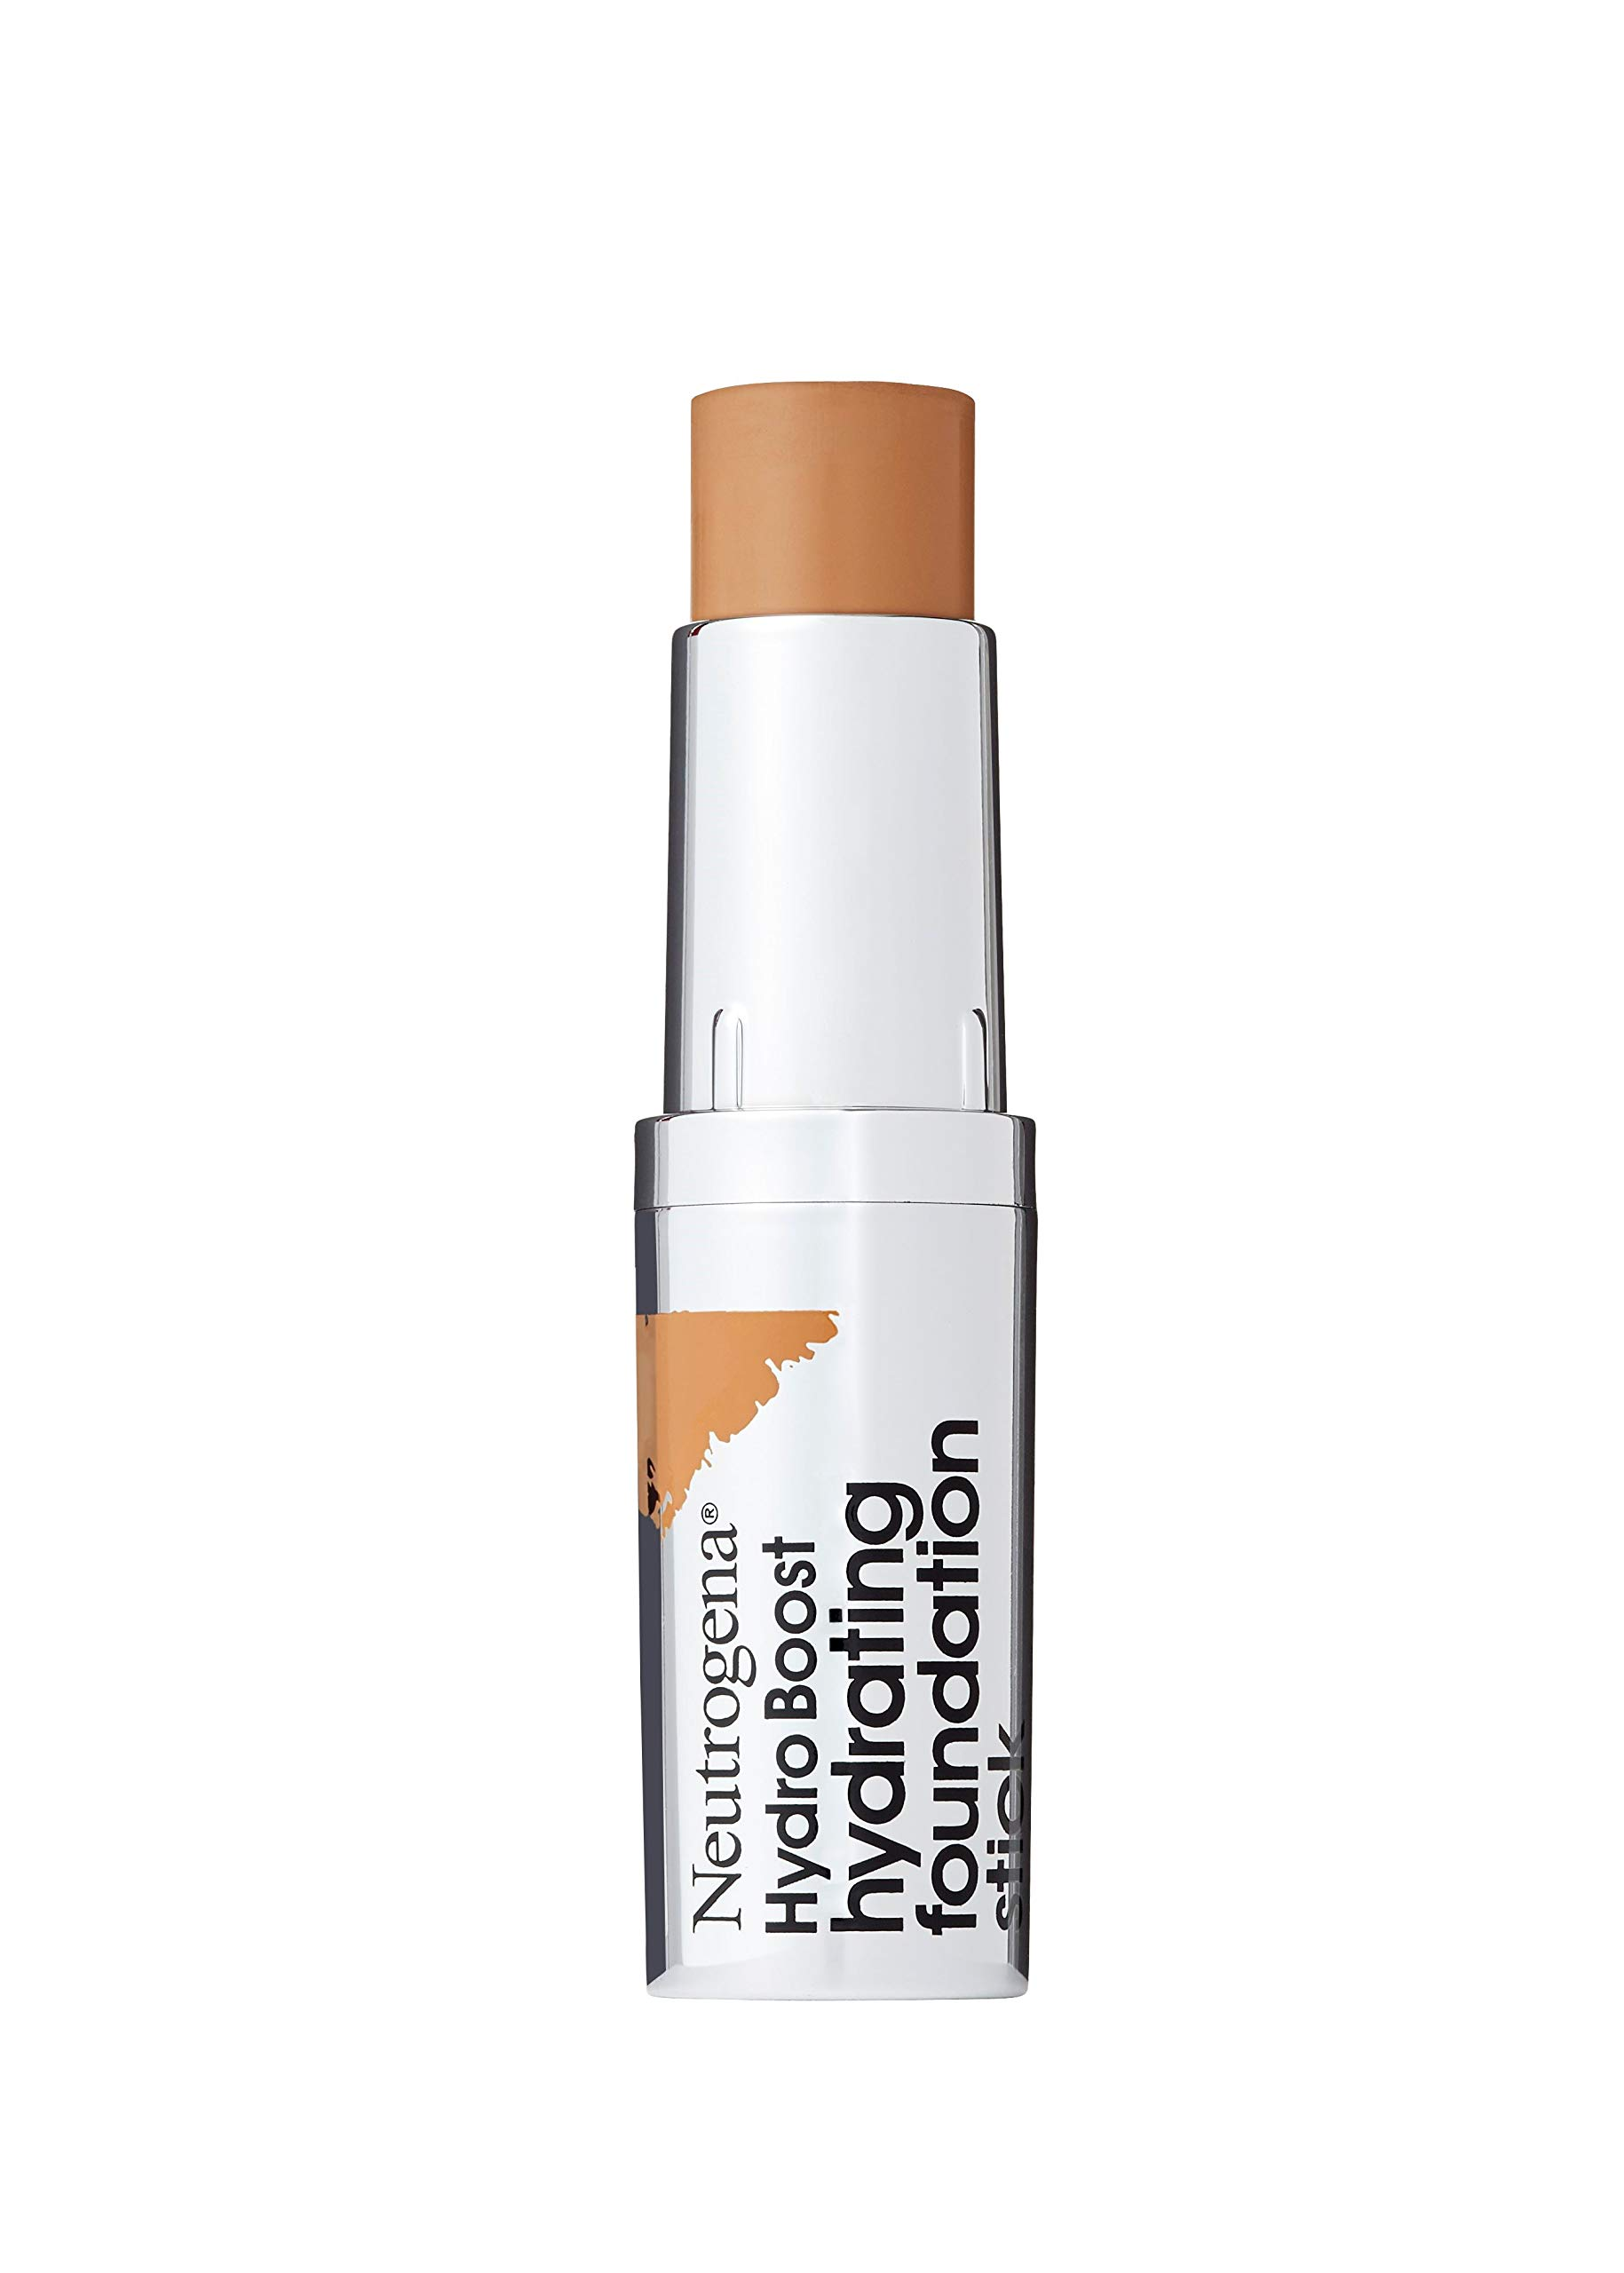 Neutrogena Hydro Boost Hydrating Foundation Stick with Hyaluronic Acid, Oil-Free & Non-Comedogenic Moisturizing Makeup for Smooth Coverage & Radiant-Looking Skin, Cocoa, 0.29 oz